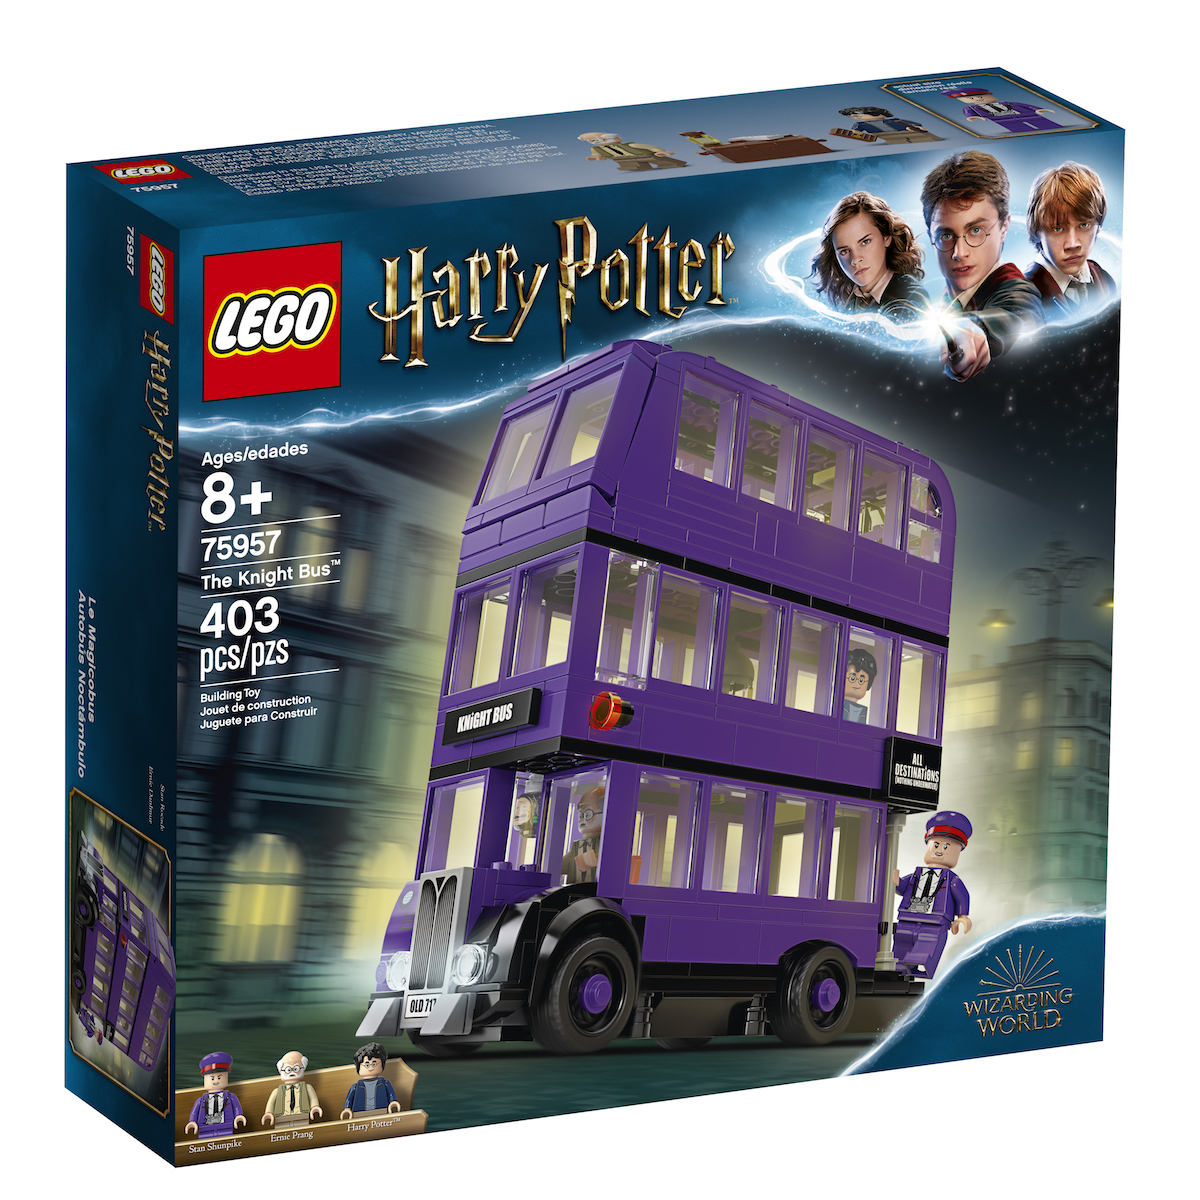 Harry Potter Advent Calendar.Lego Officially Announces A Harry Potter Advent Calendar For 2019